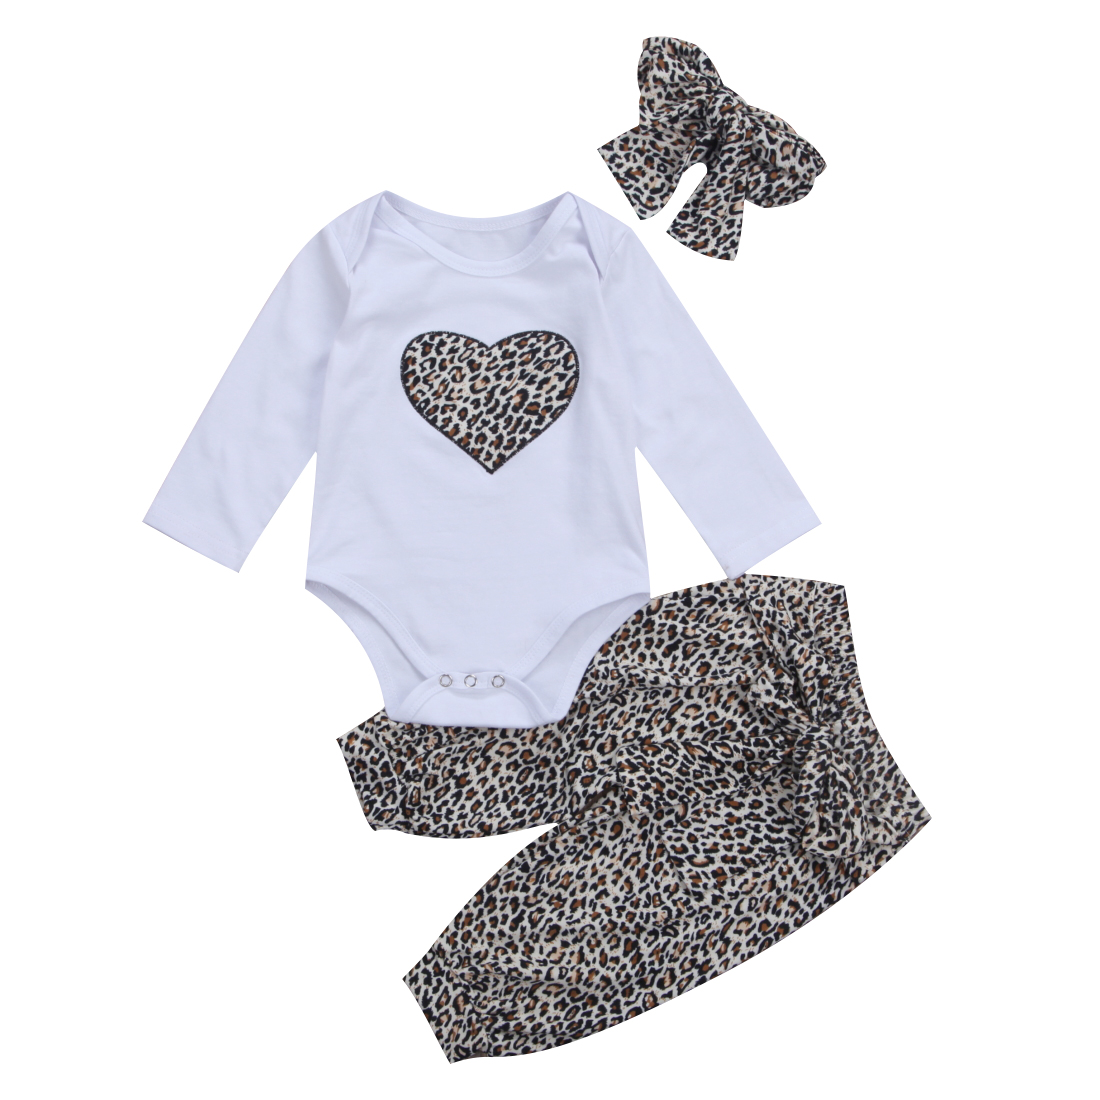 Pudcoco Kids Girl Clothes Autumn Fall Outfit Newborn Infant Baby Children Clothing Set leopard print